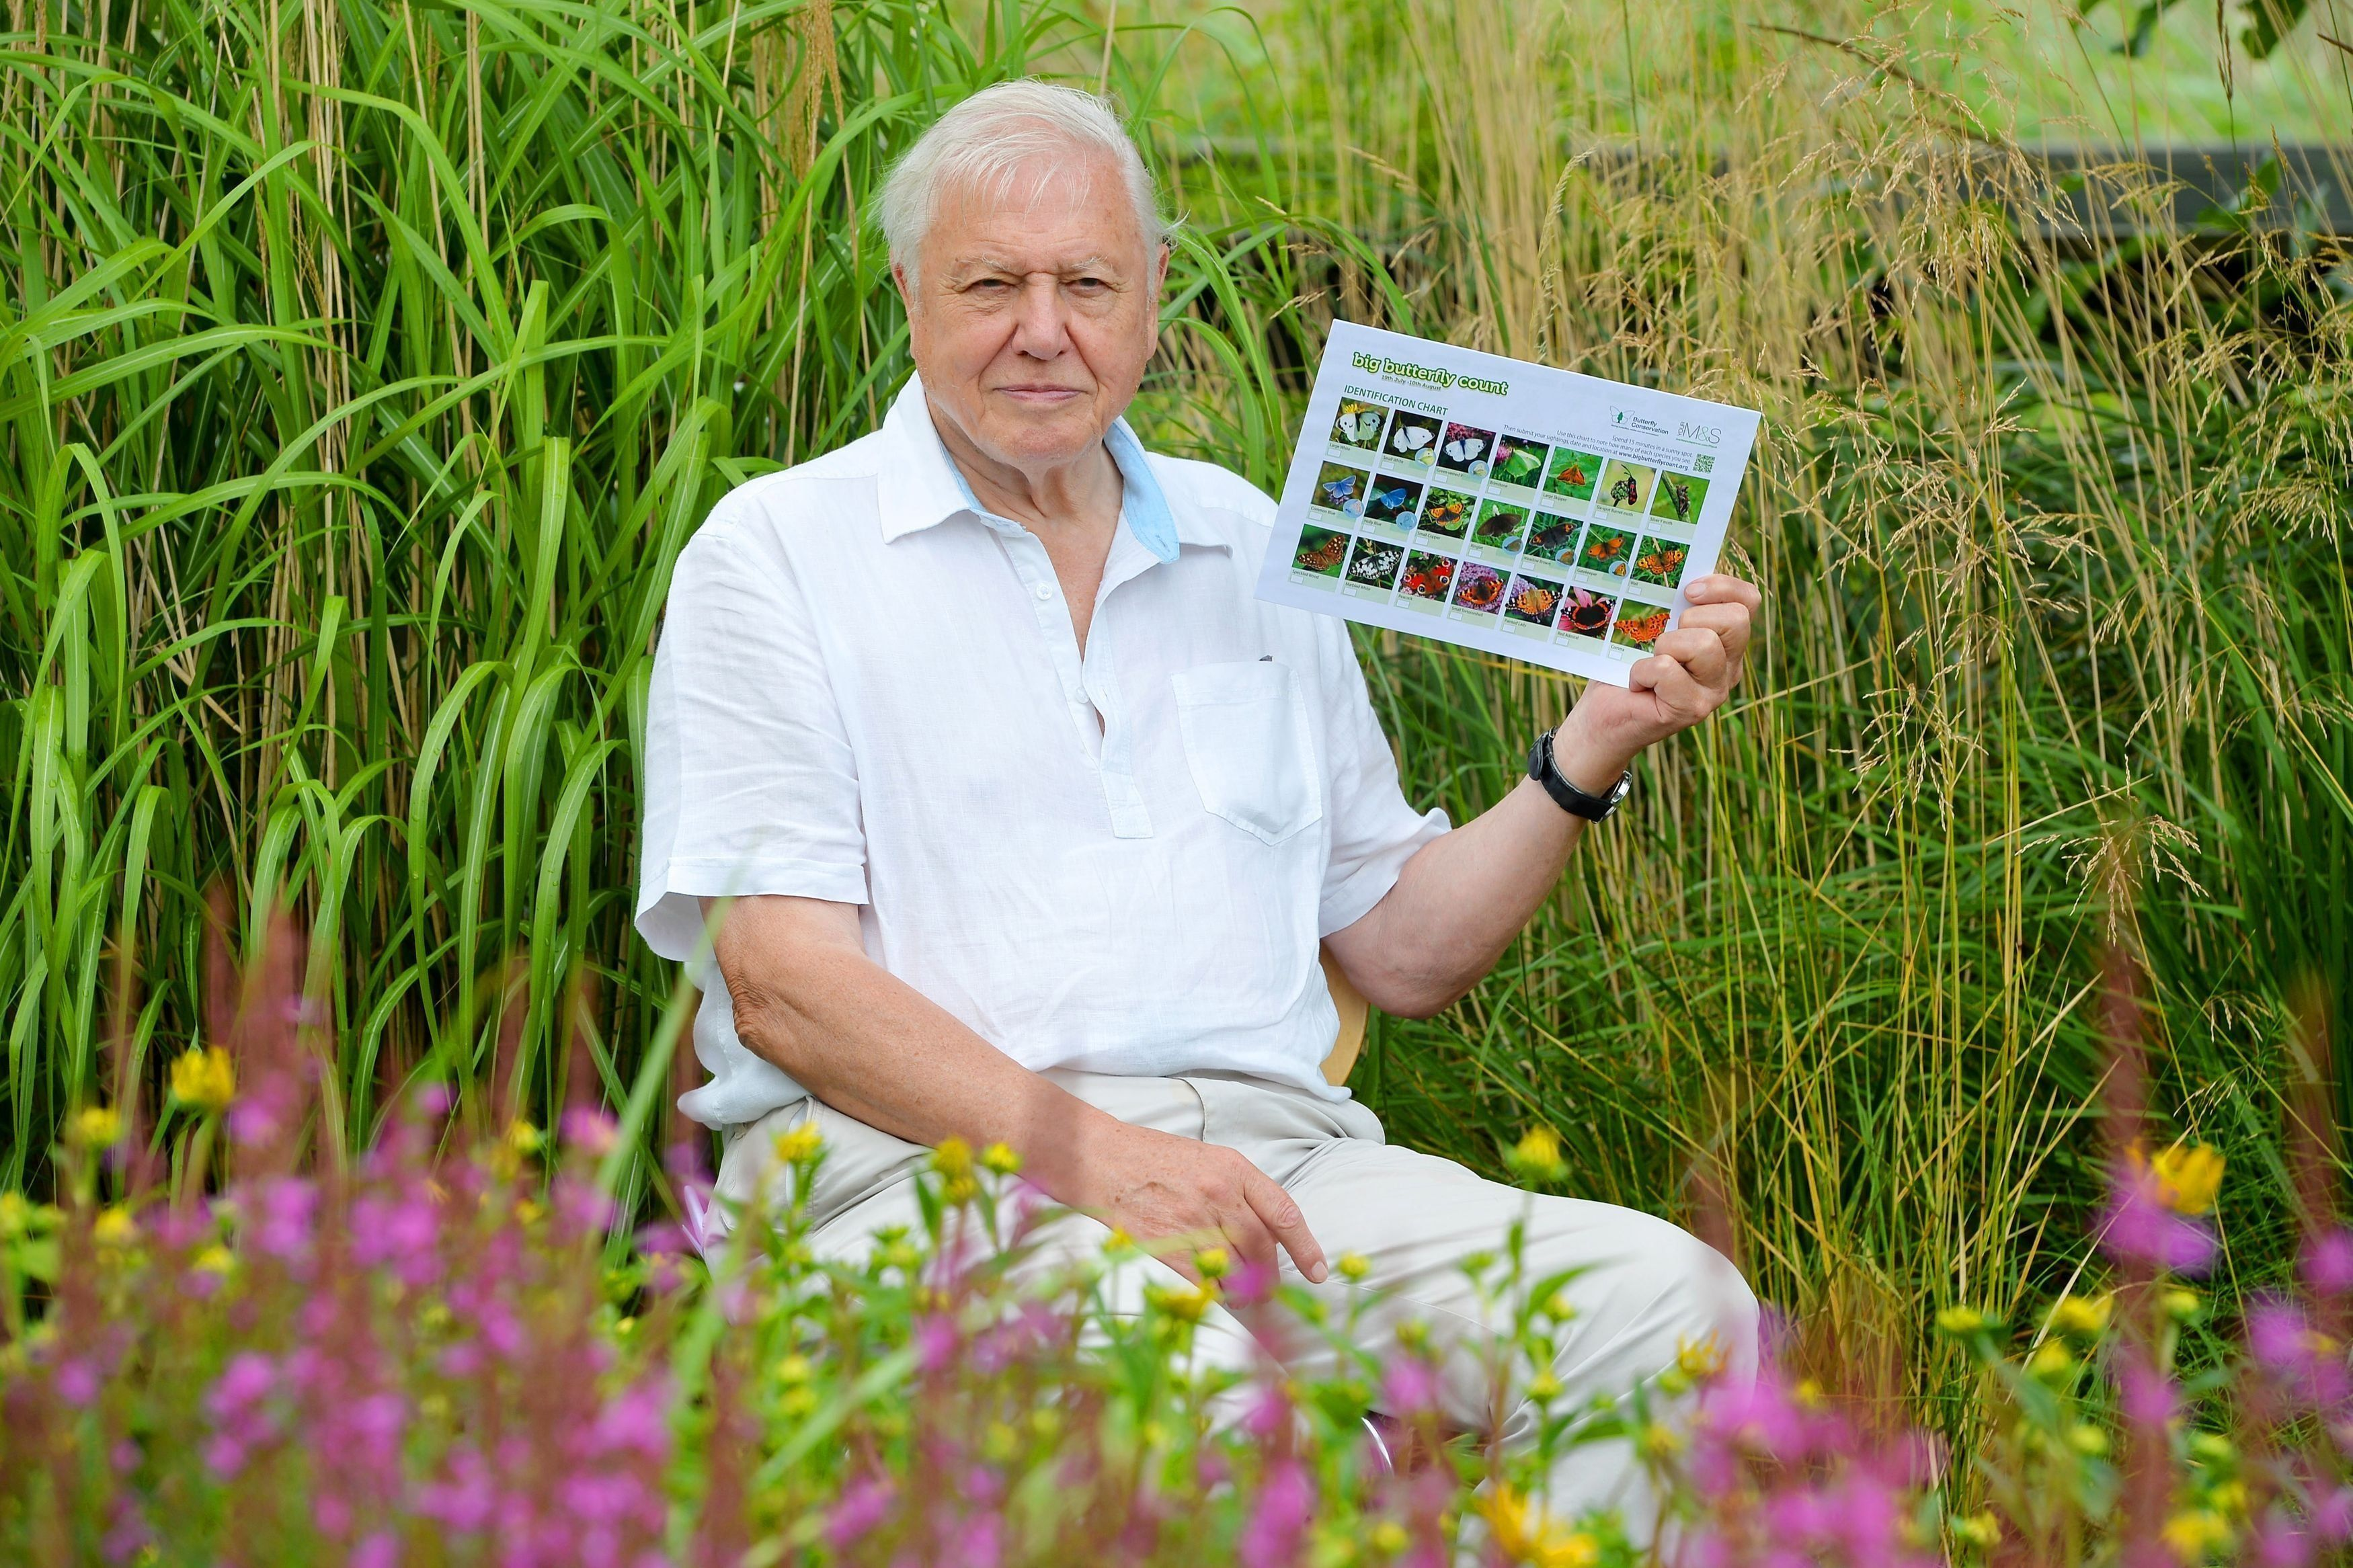 NATURE: Sir David Attenborough Wants You To Help Him Count